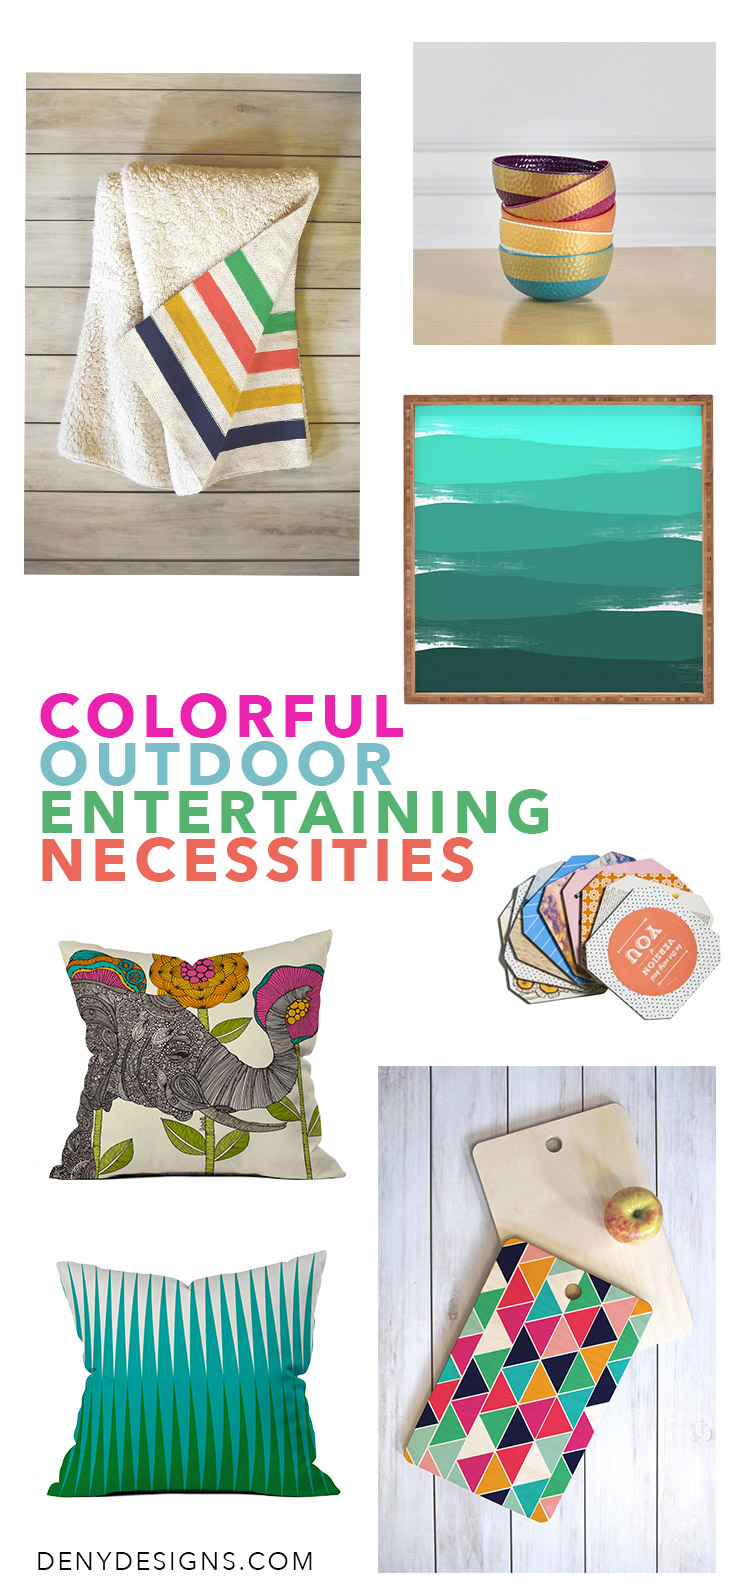 Colorful Outdoor Entertaining Necessities